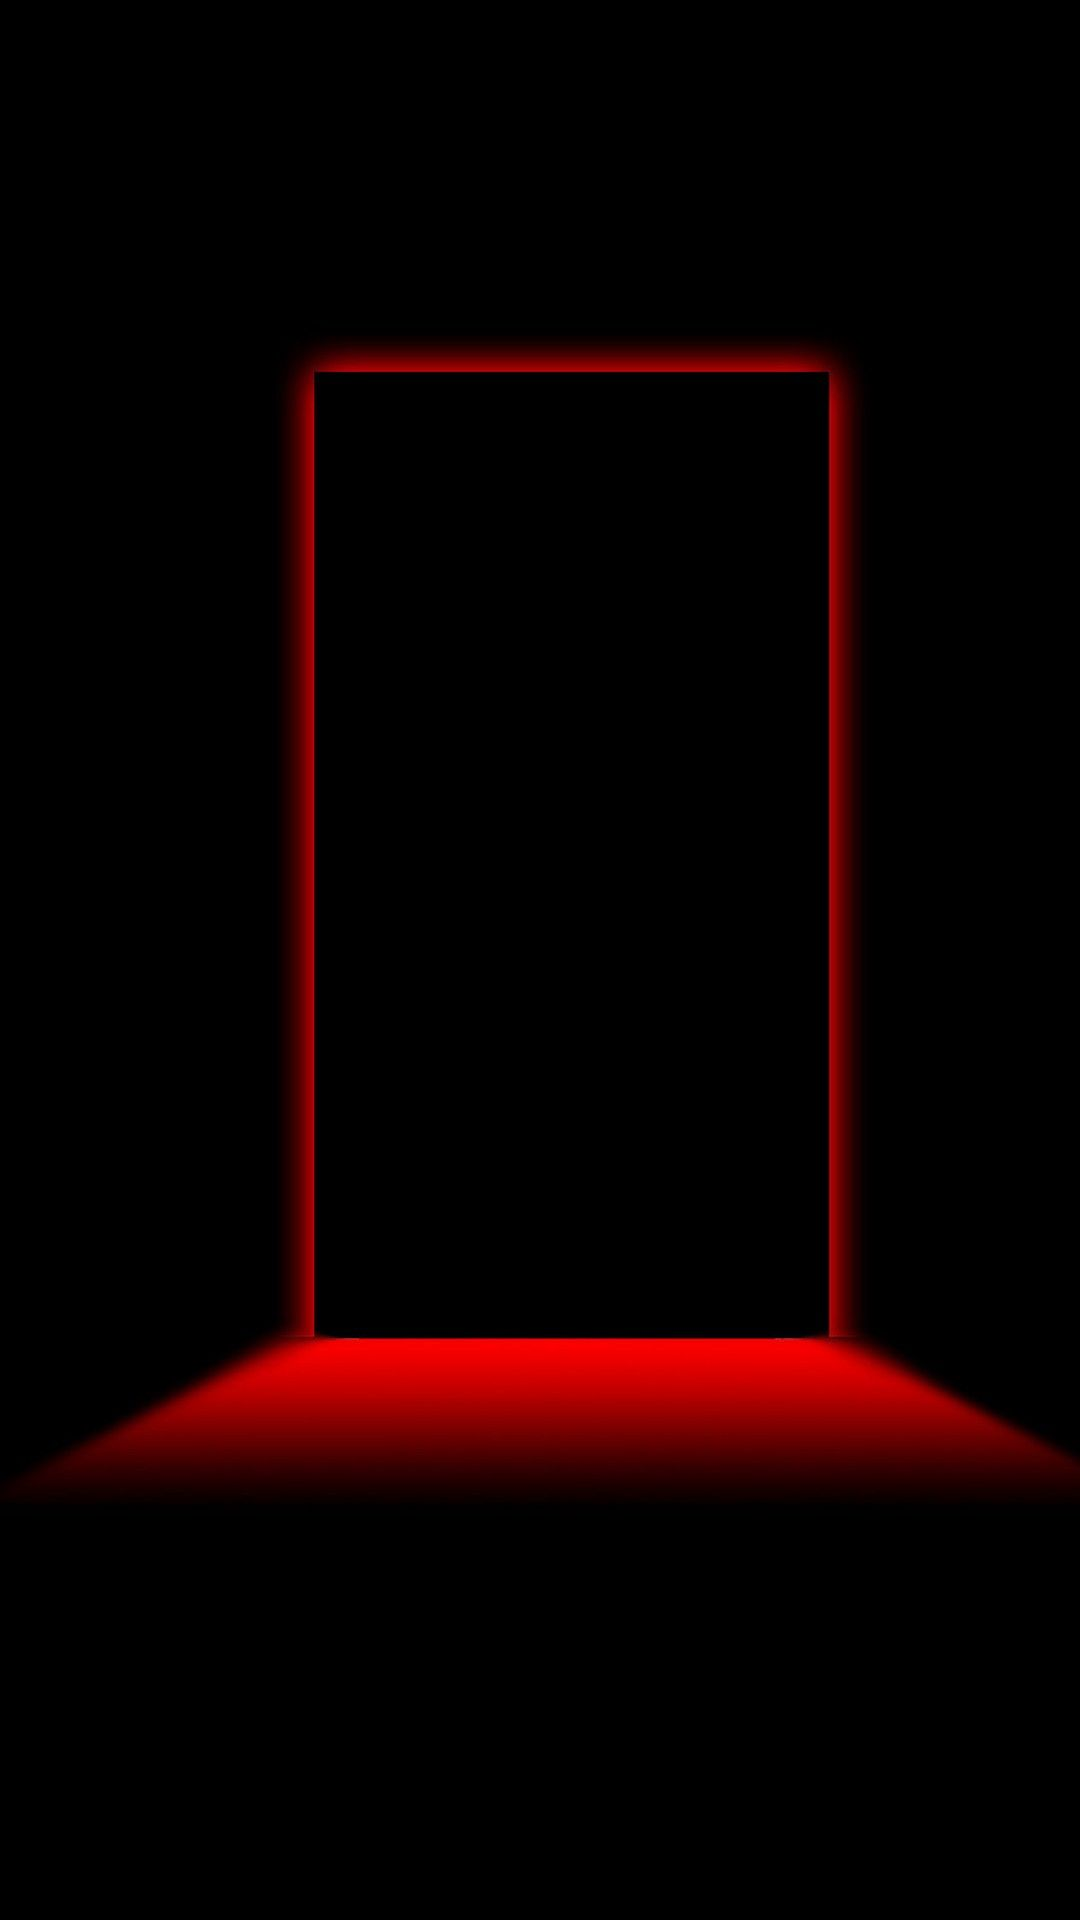 Black and Red Phone 8 Wallpaper Best Phone Wallpaper